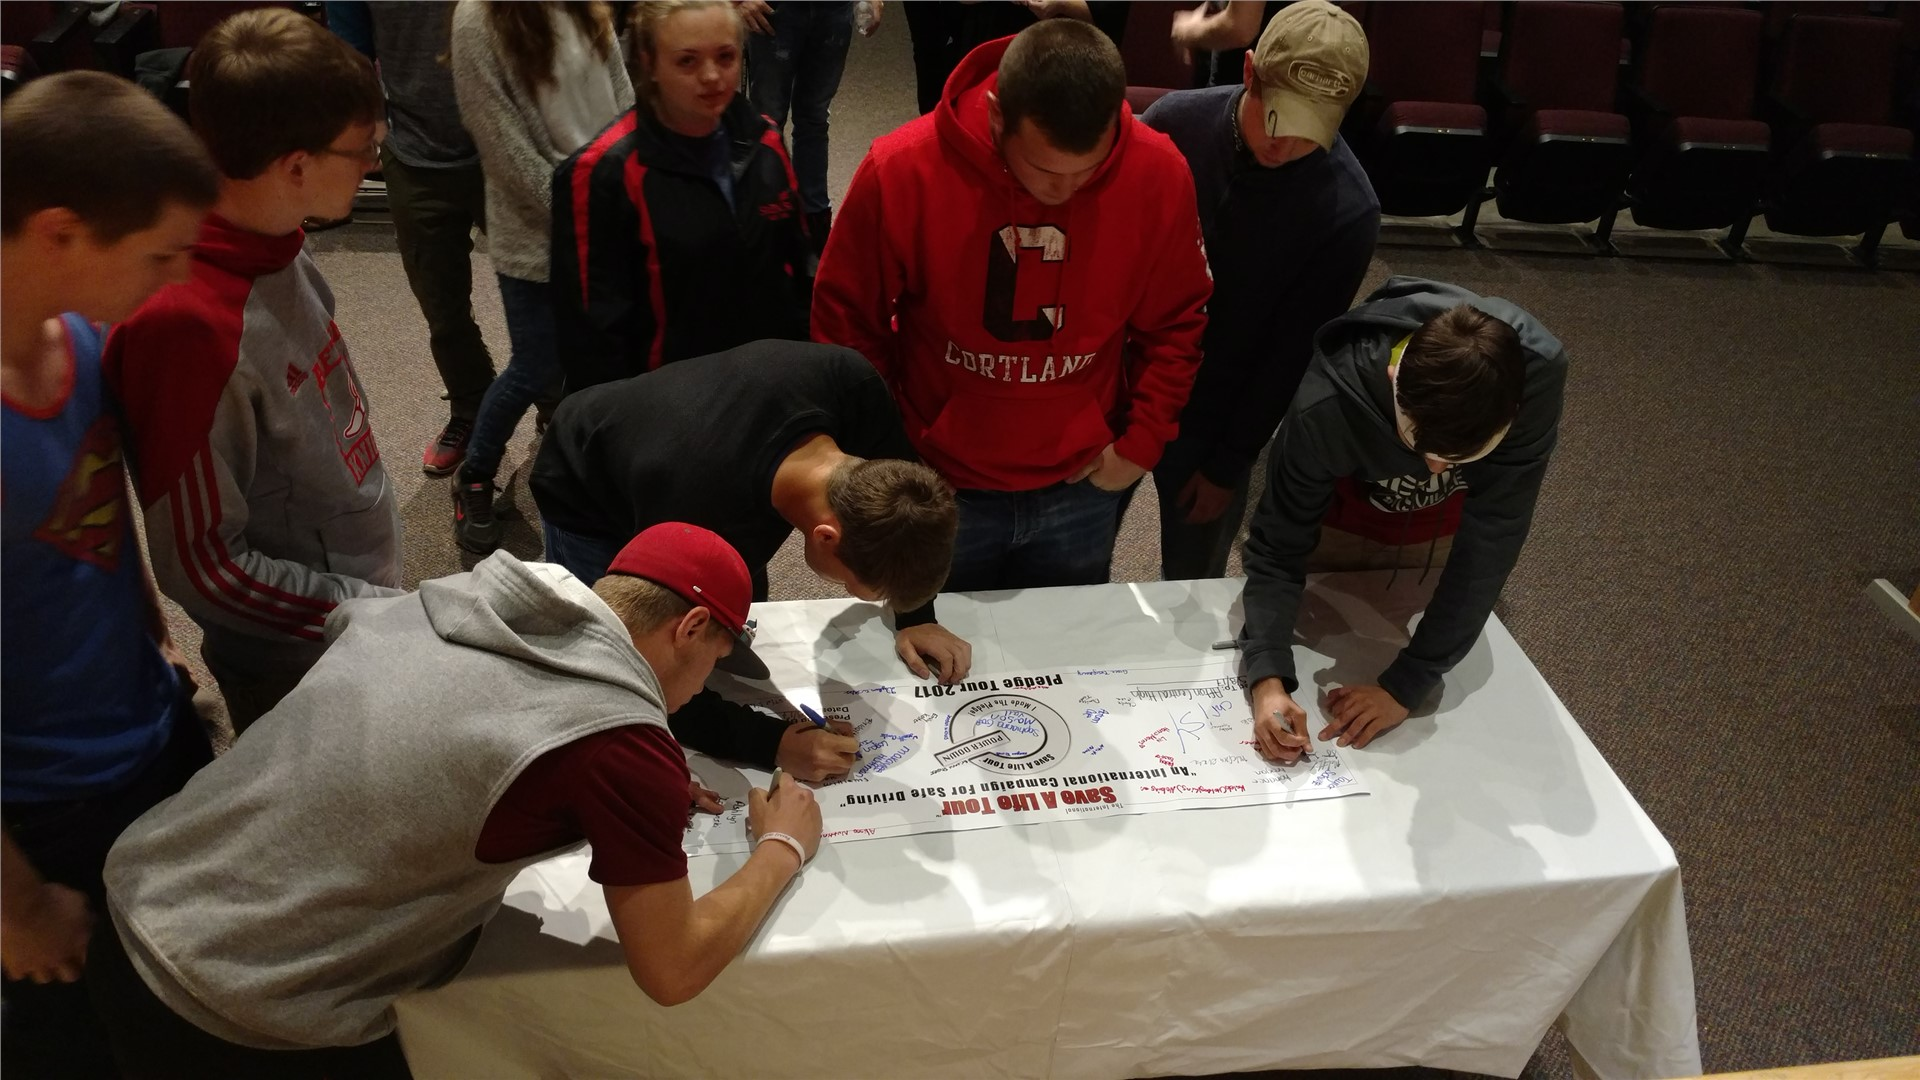 Students signing pledge banner.